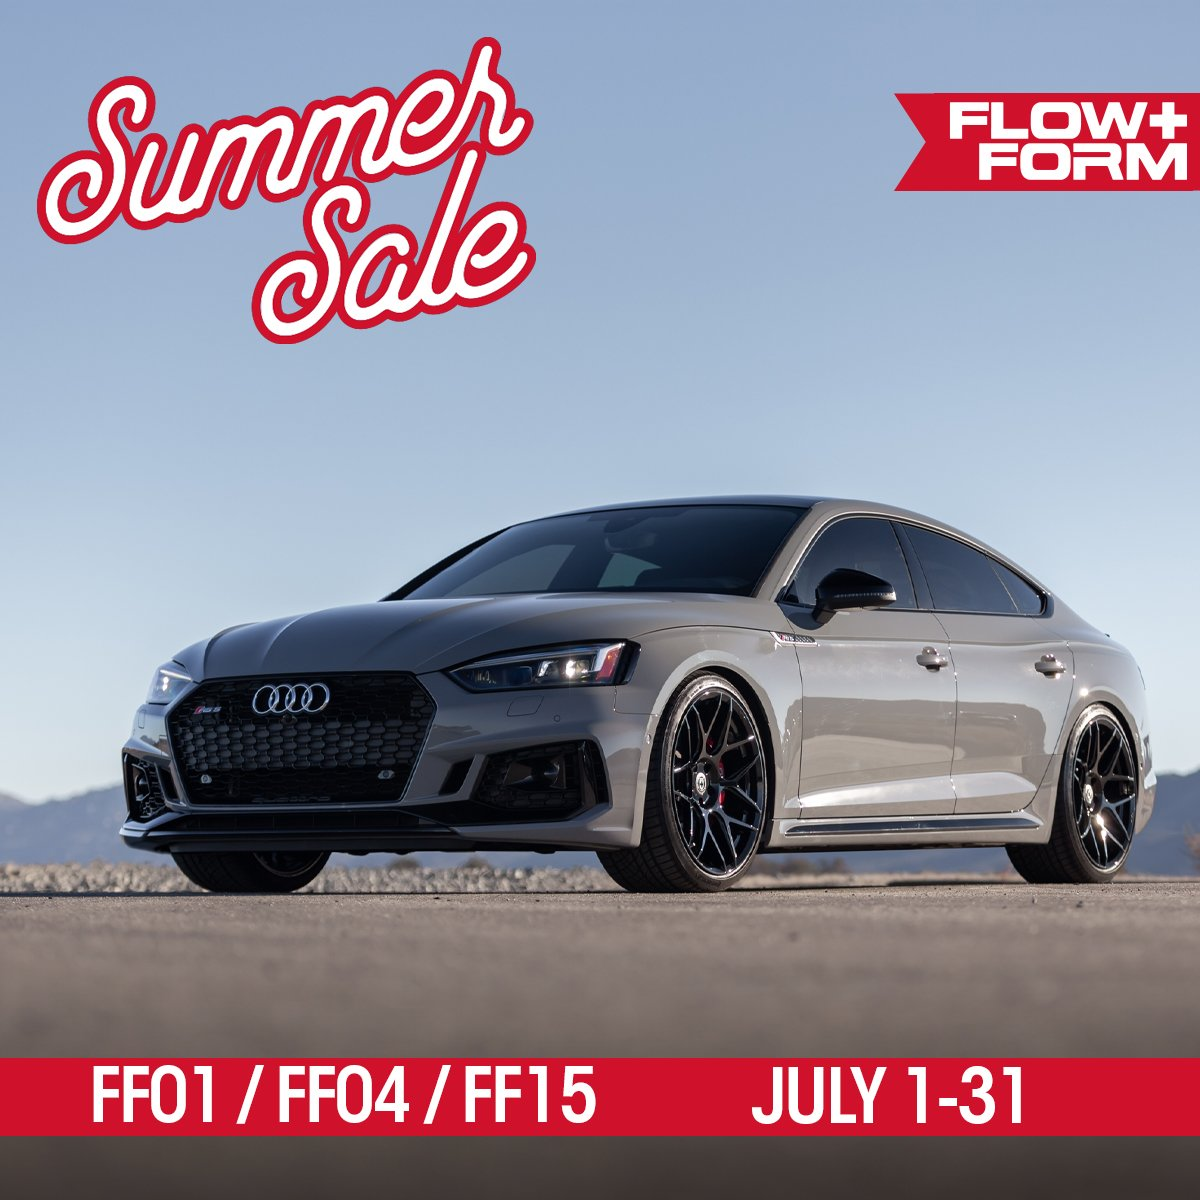 rs5_ff001_summersale_2020_60343017a9d7147d7f91314939e305caf70ee0b0.jpg